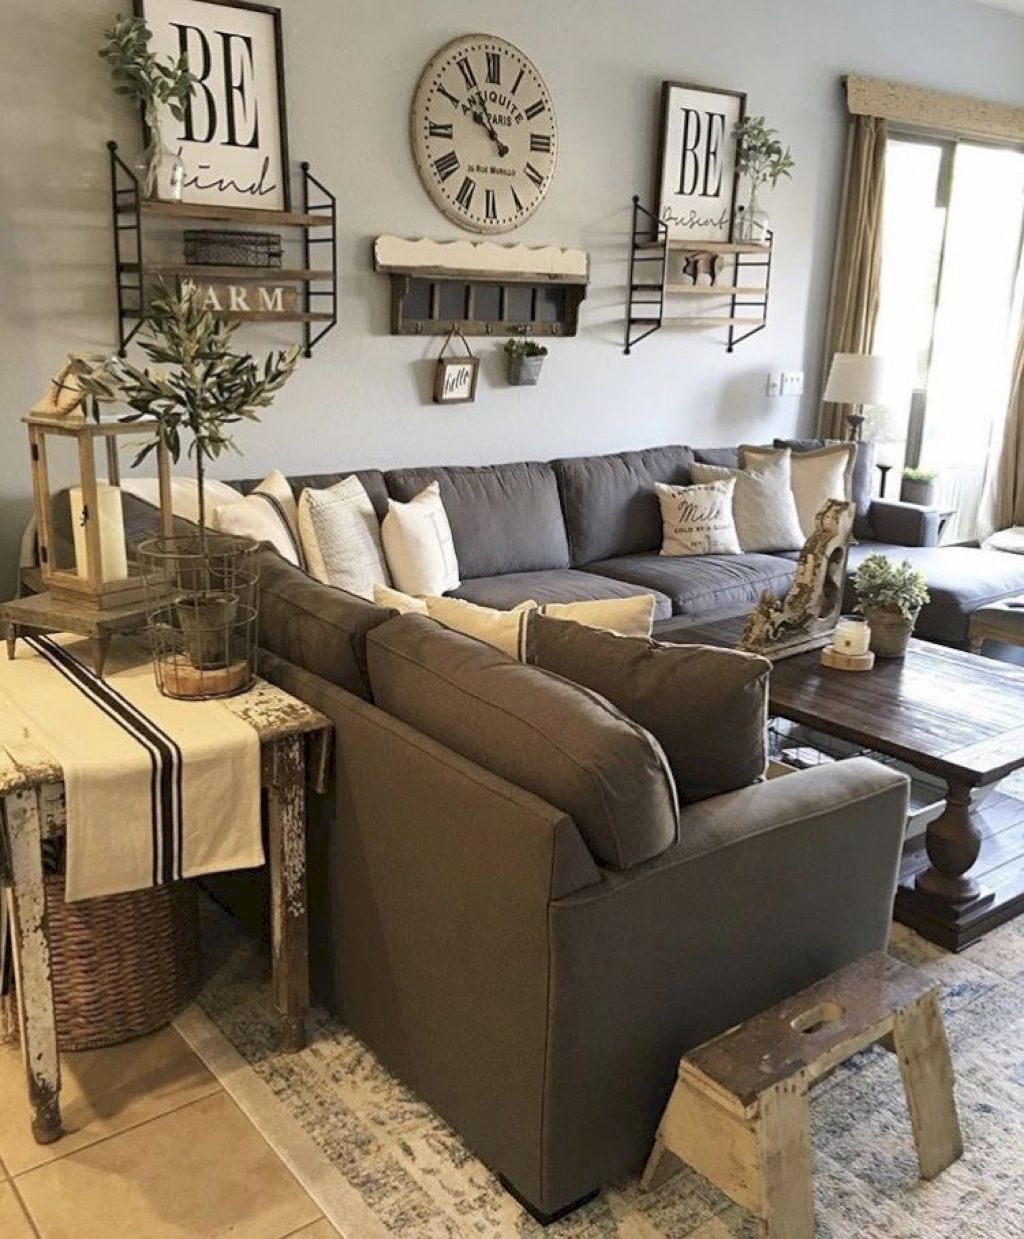 31 Best Decorating Ideas Images On Pinterest: Gorgeous Farmhouse Living Room Ideas (49)